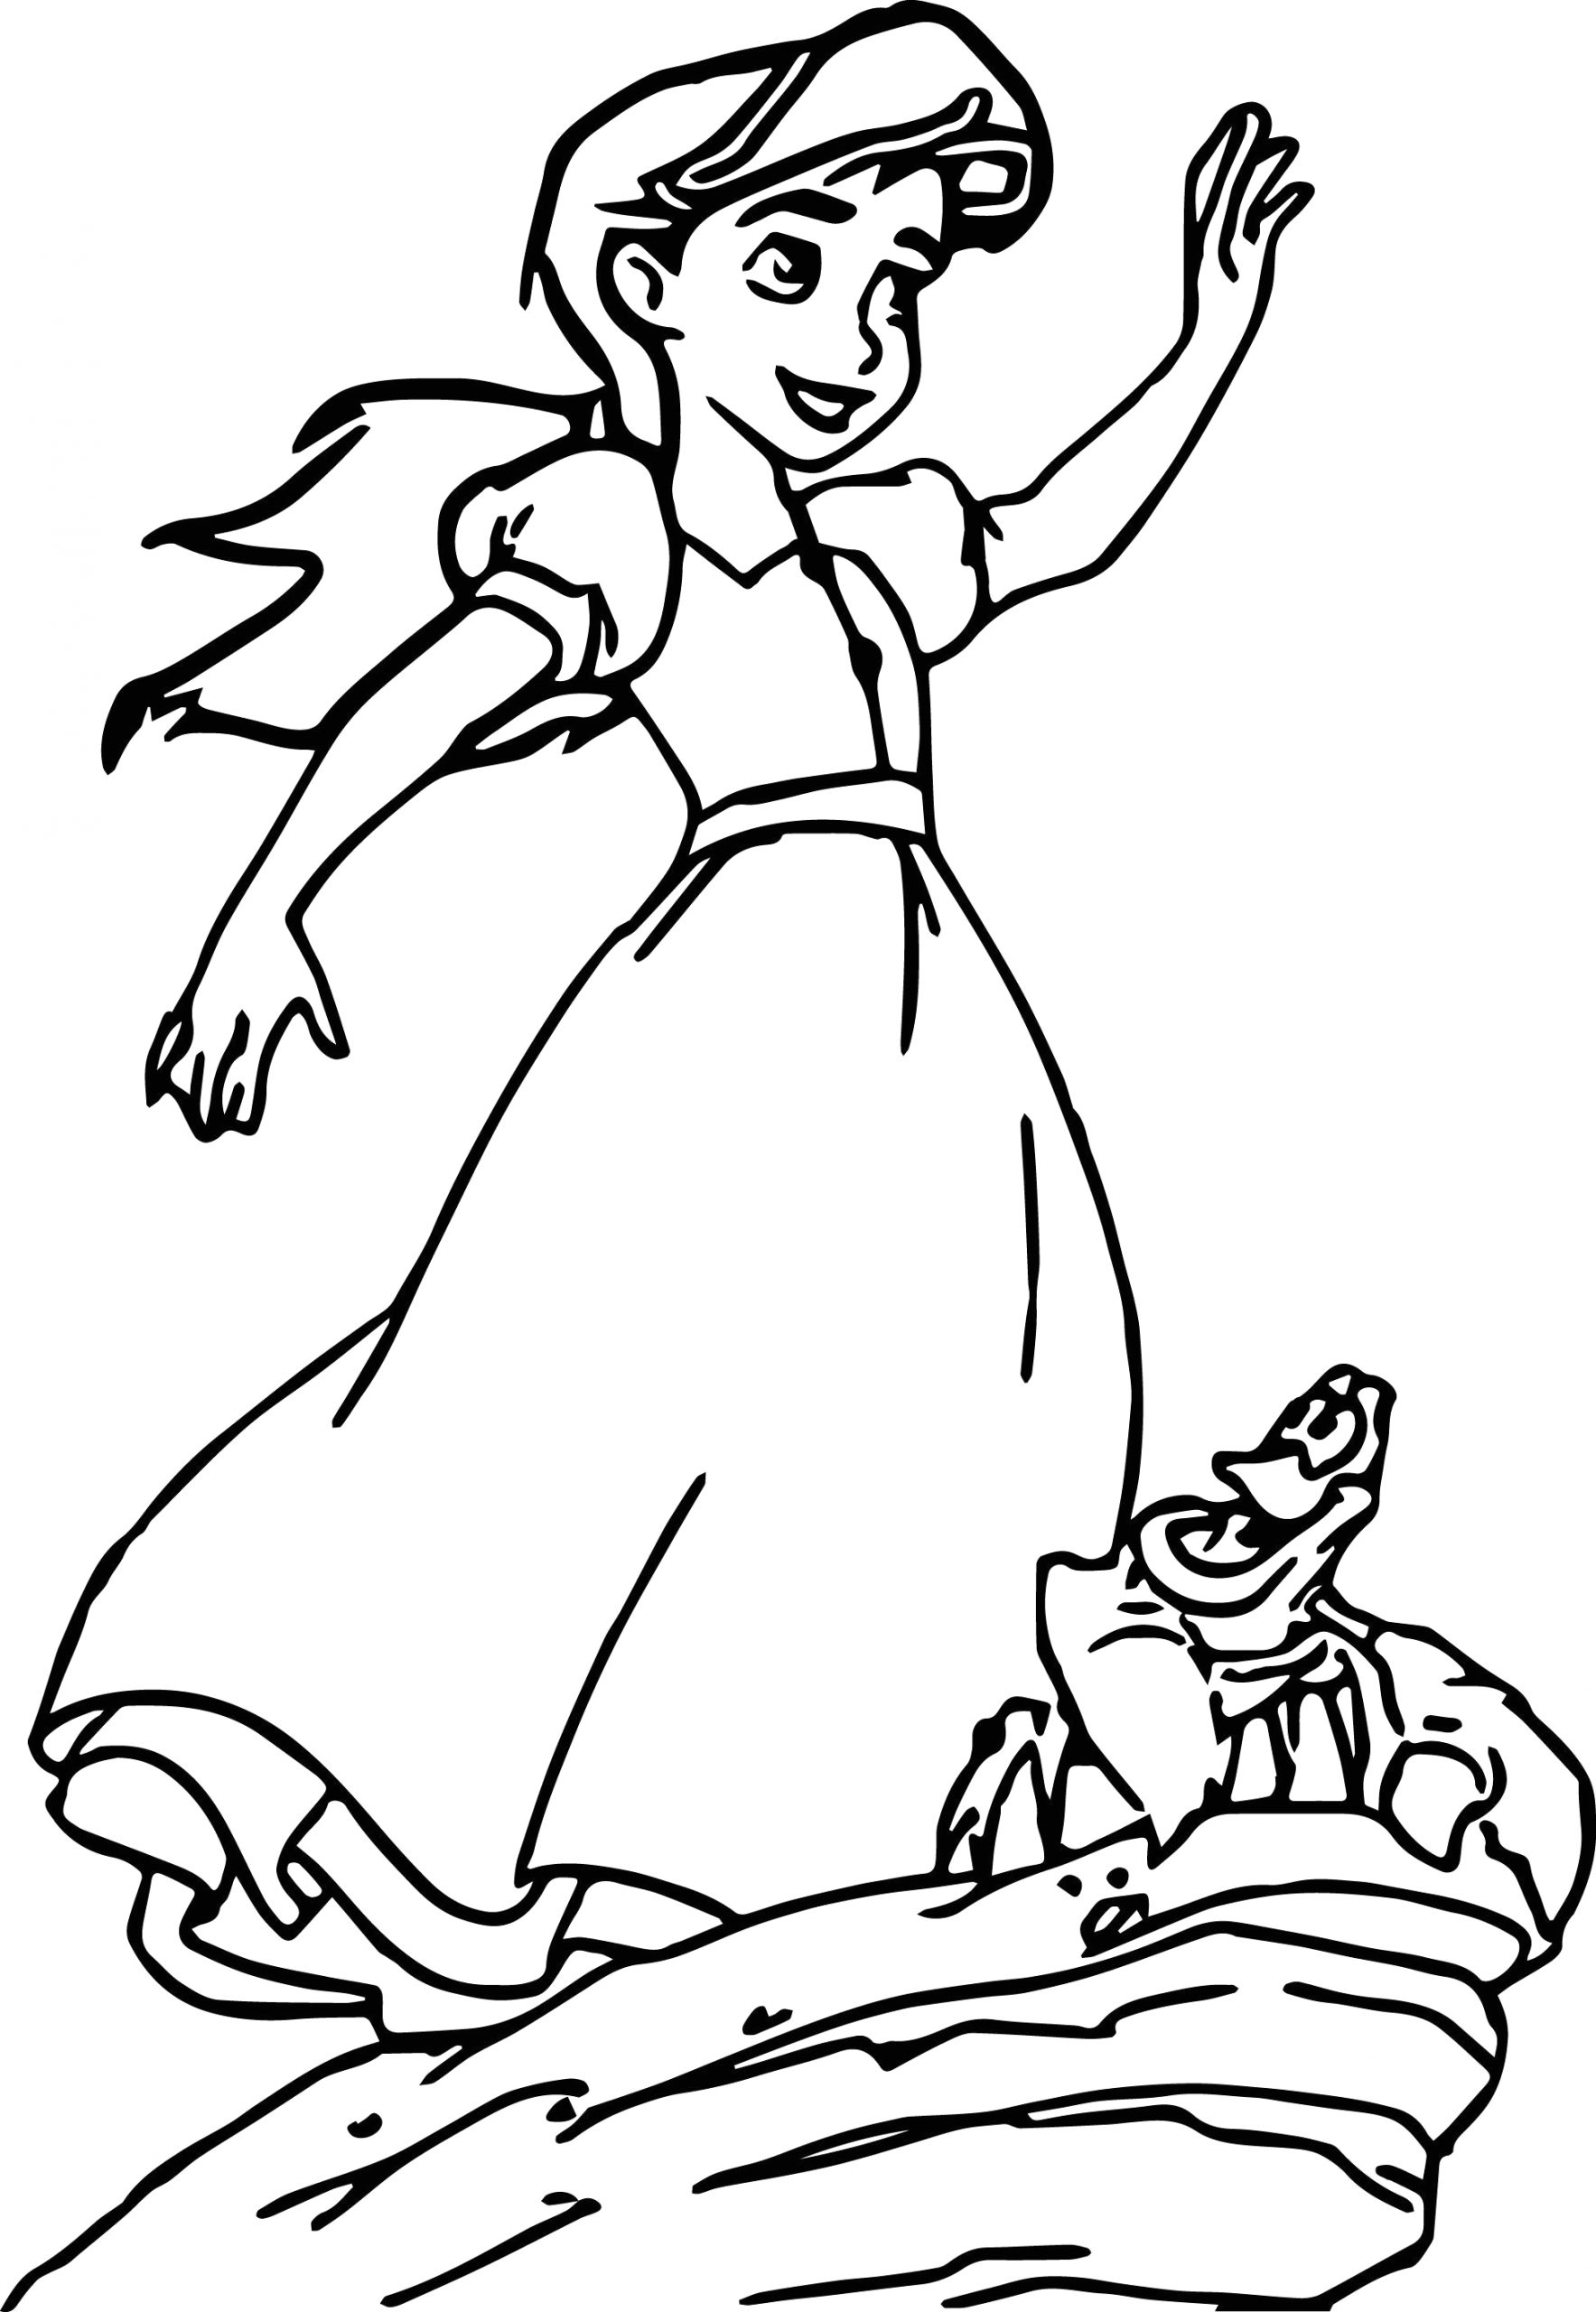 The Little Mermaid 2 Return to the Sea Coloring Pages Disney the Little Mermaid 2 Return to the Sea Coloring